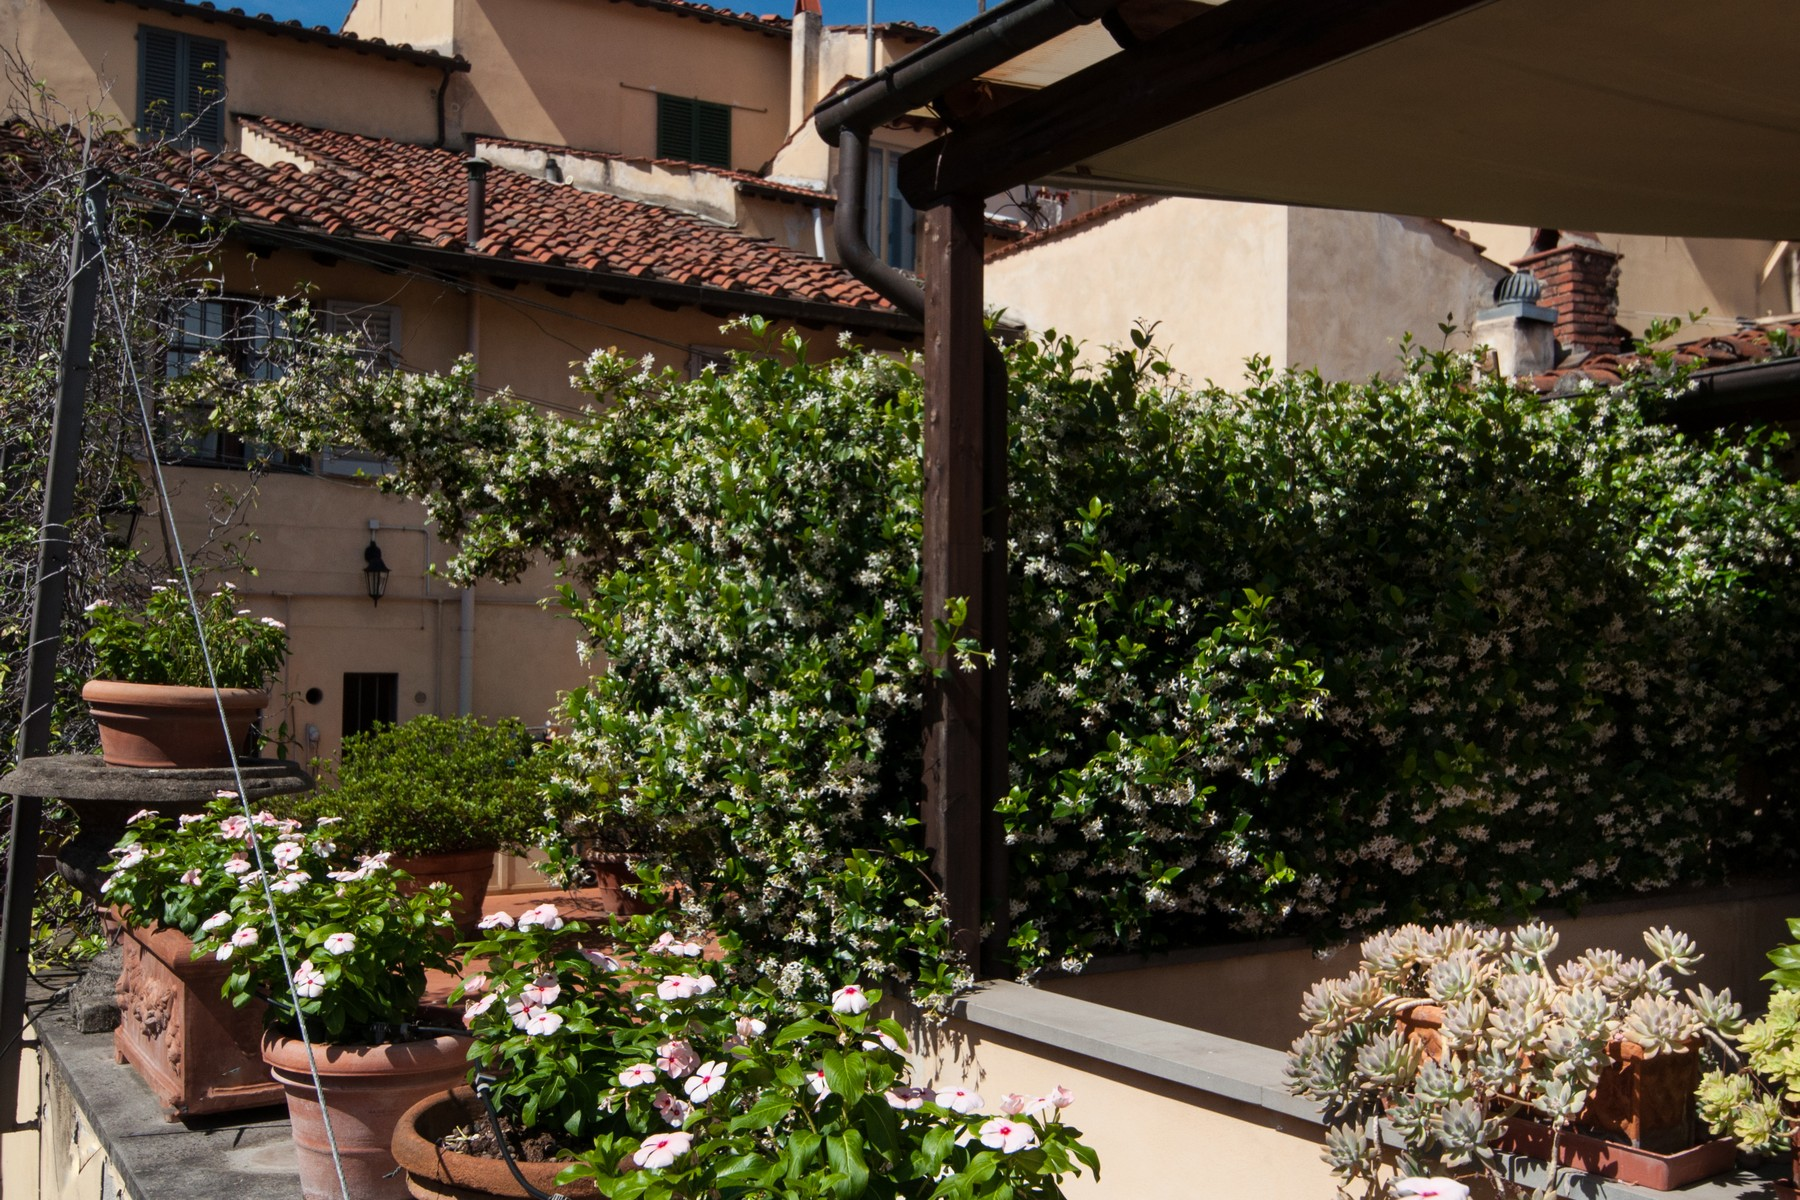 Additional photo for property listing at Charming apartment with terrace Piazza San Francesco Prato, Prato 59100 Italie